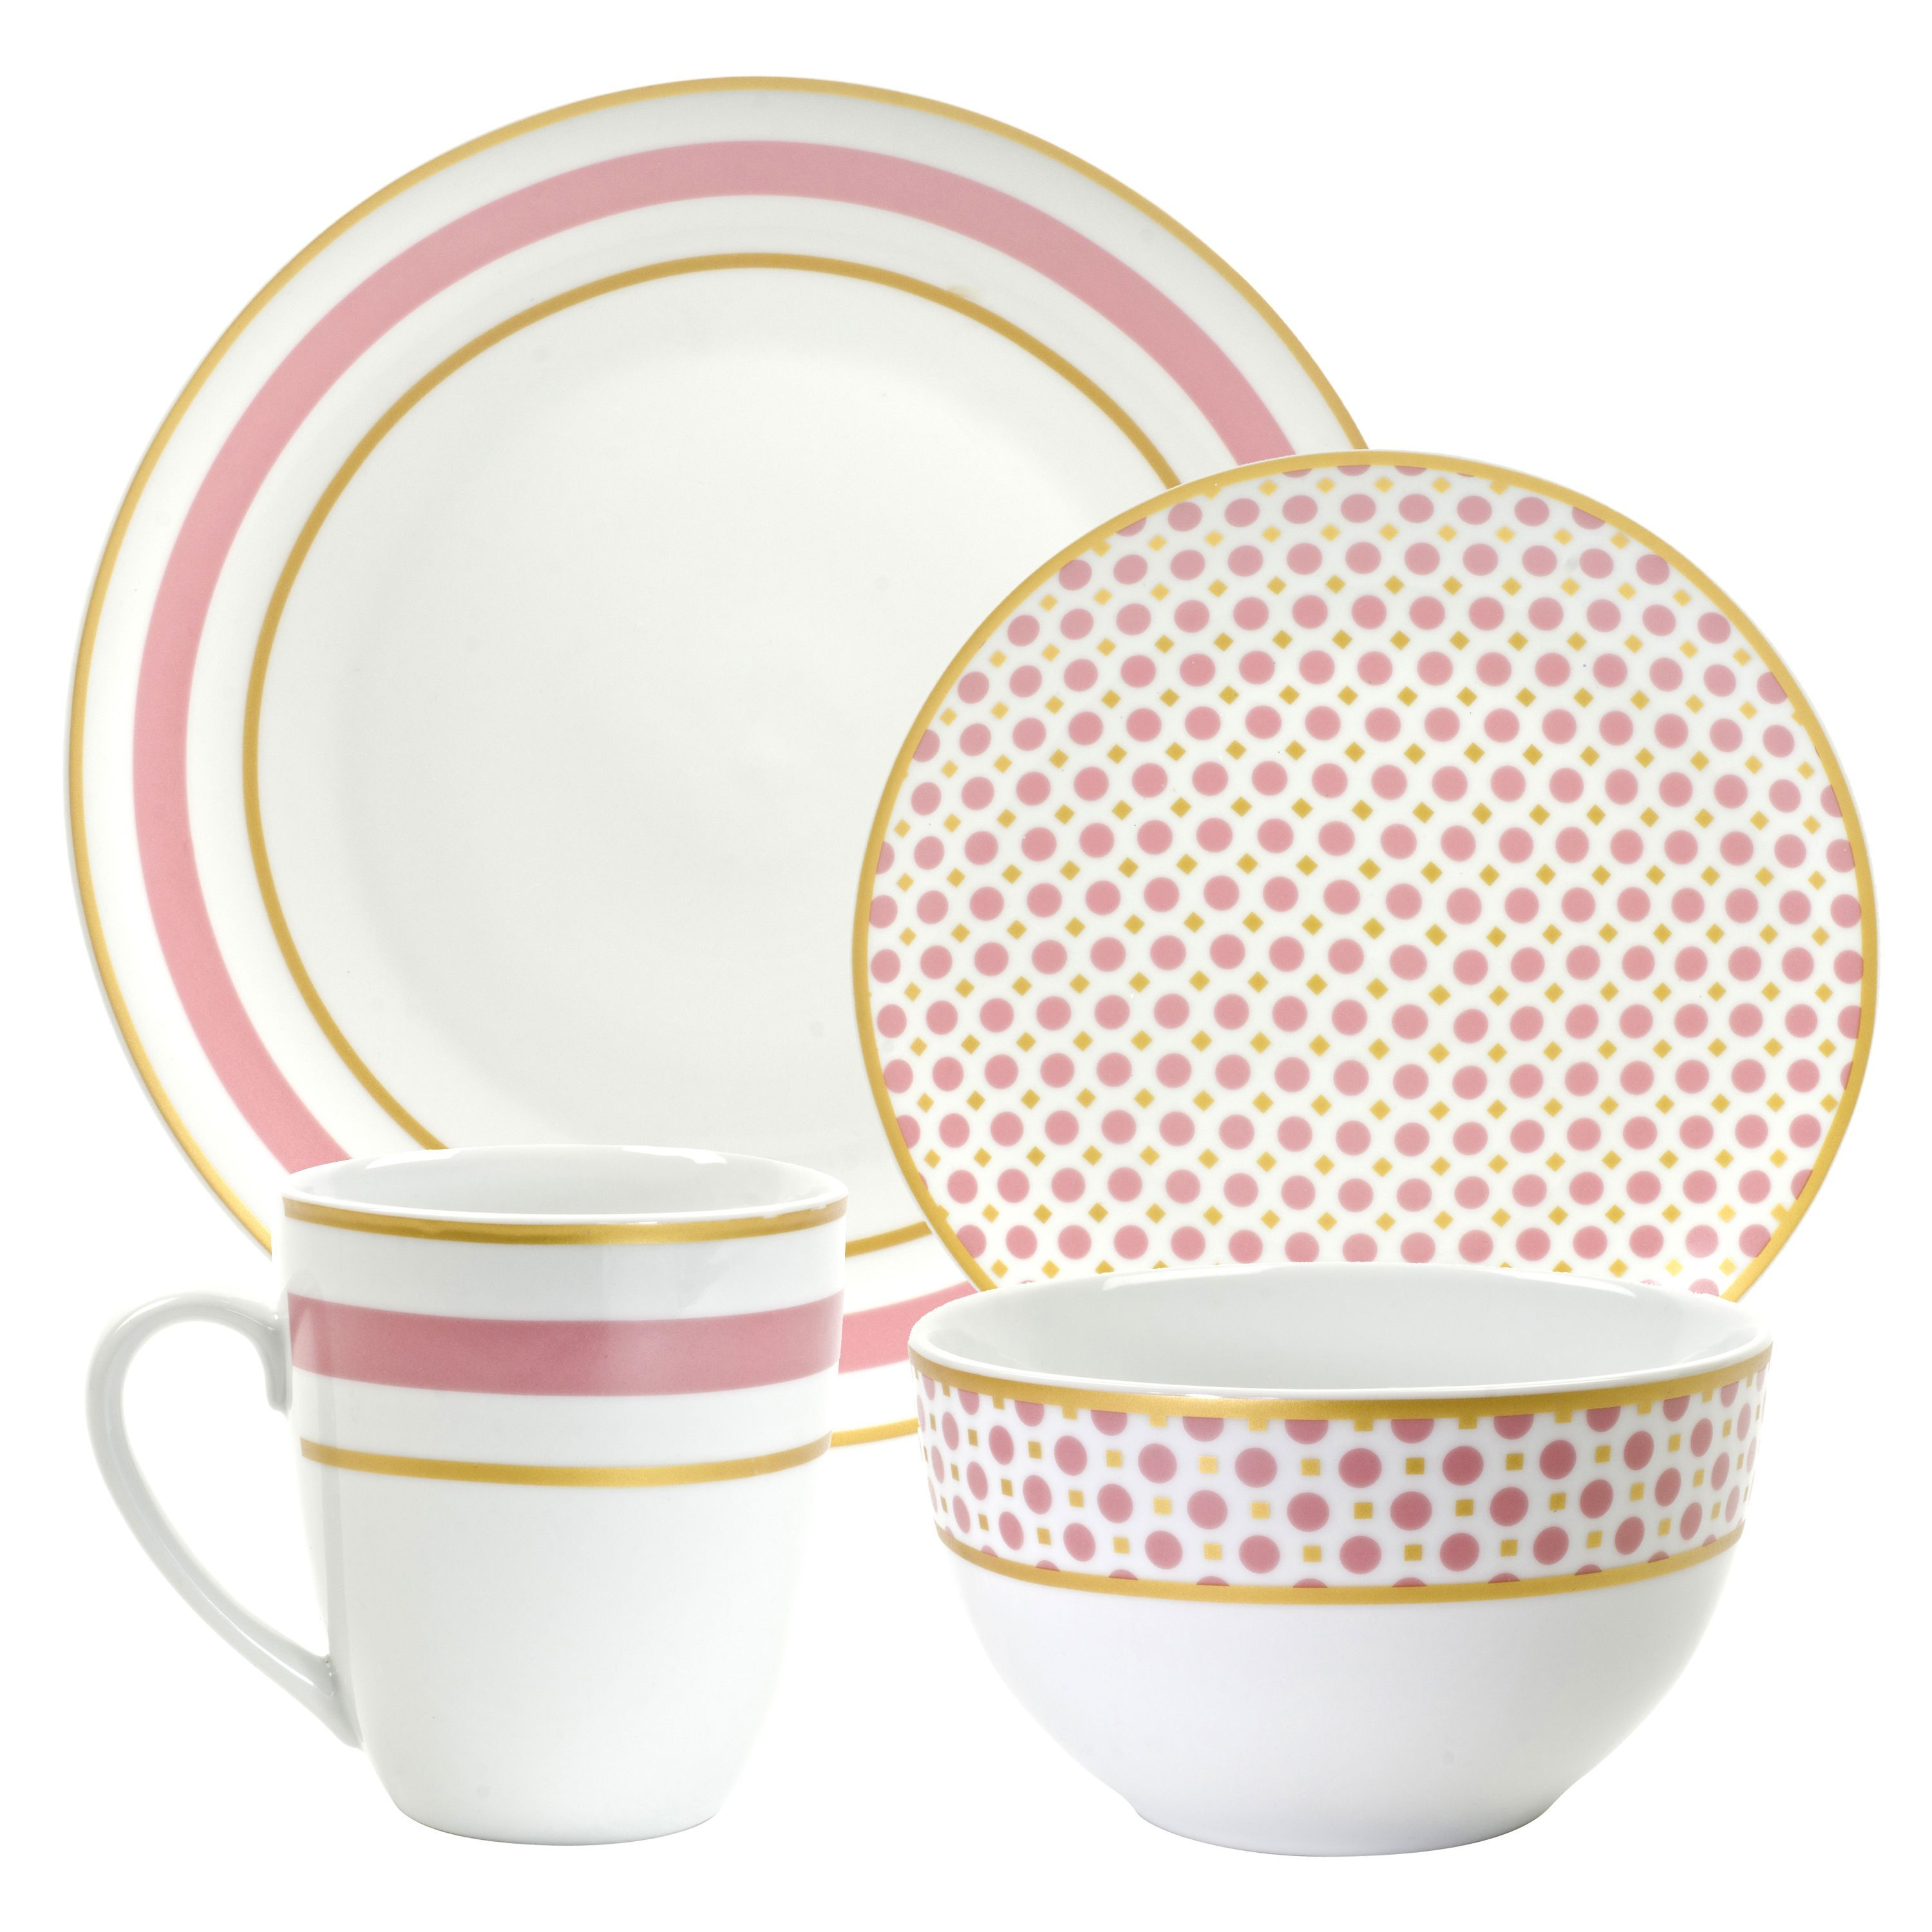 This dinner set offers service for four with a whimsical design. It includes four each dinner plates bowls salad plates and mugs.  sc 1 st  Pinterest & This 16-piece dinner set offers service for four with a whimsical ...